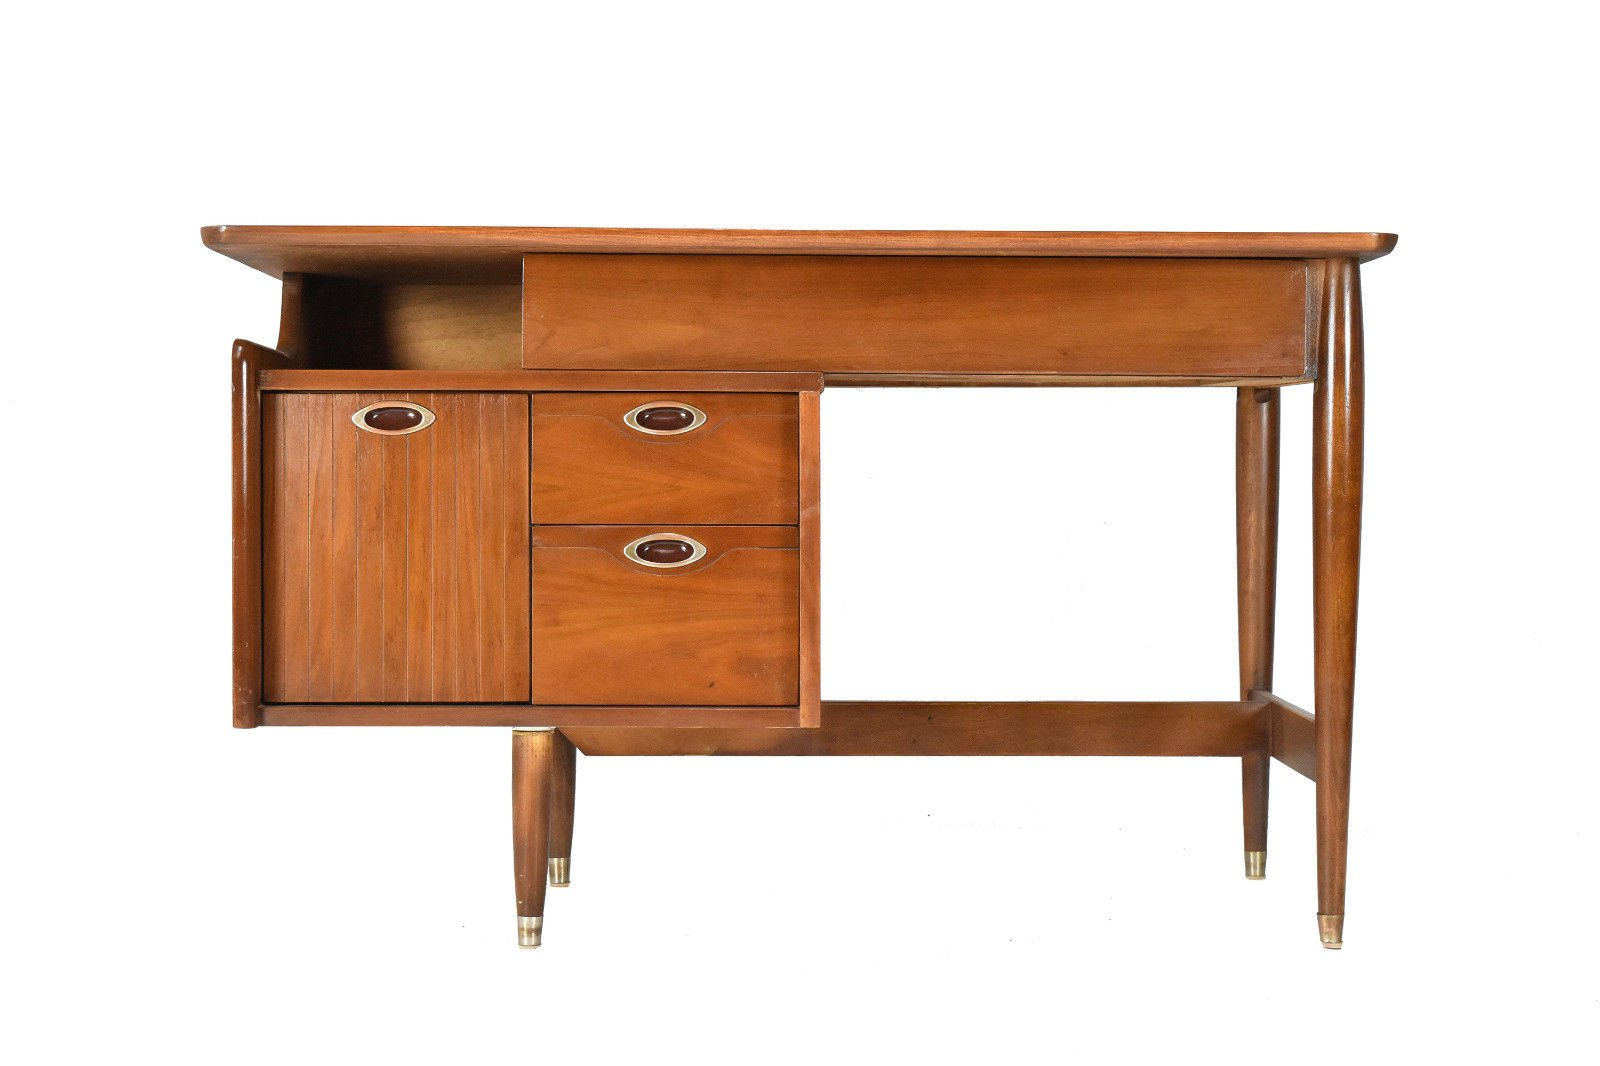 this piece from hooker furnitures 1960s mainline series features unique oval hardware slim desk legs and a mixture of solid walnut and walnut veneer hooker furniture began crafting furniture in 1924 in virginia and continues to produce furniture in virgin